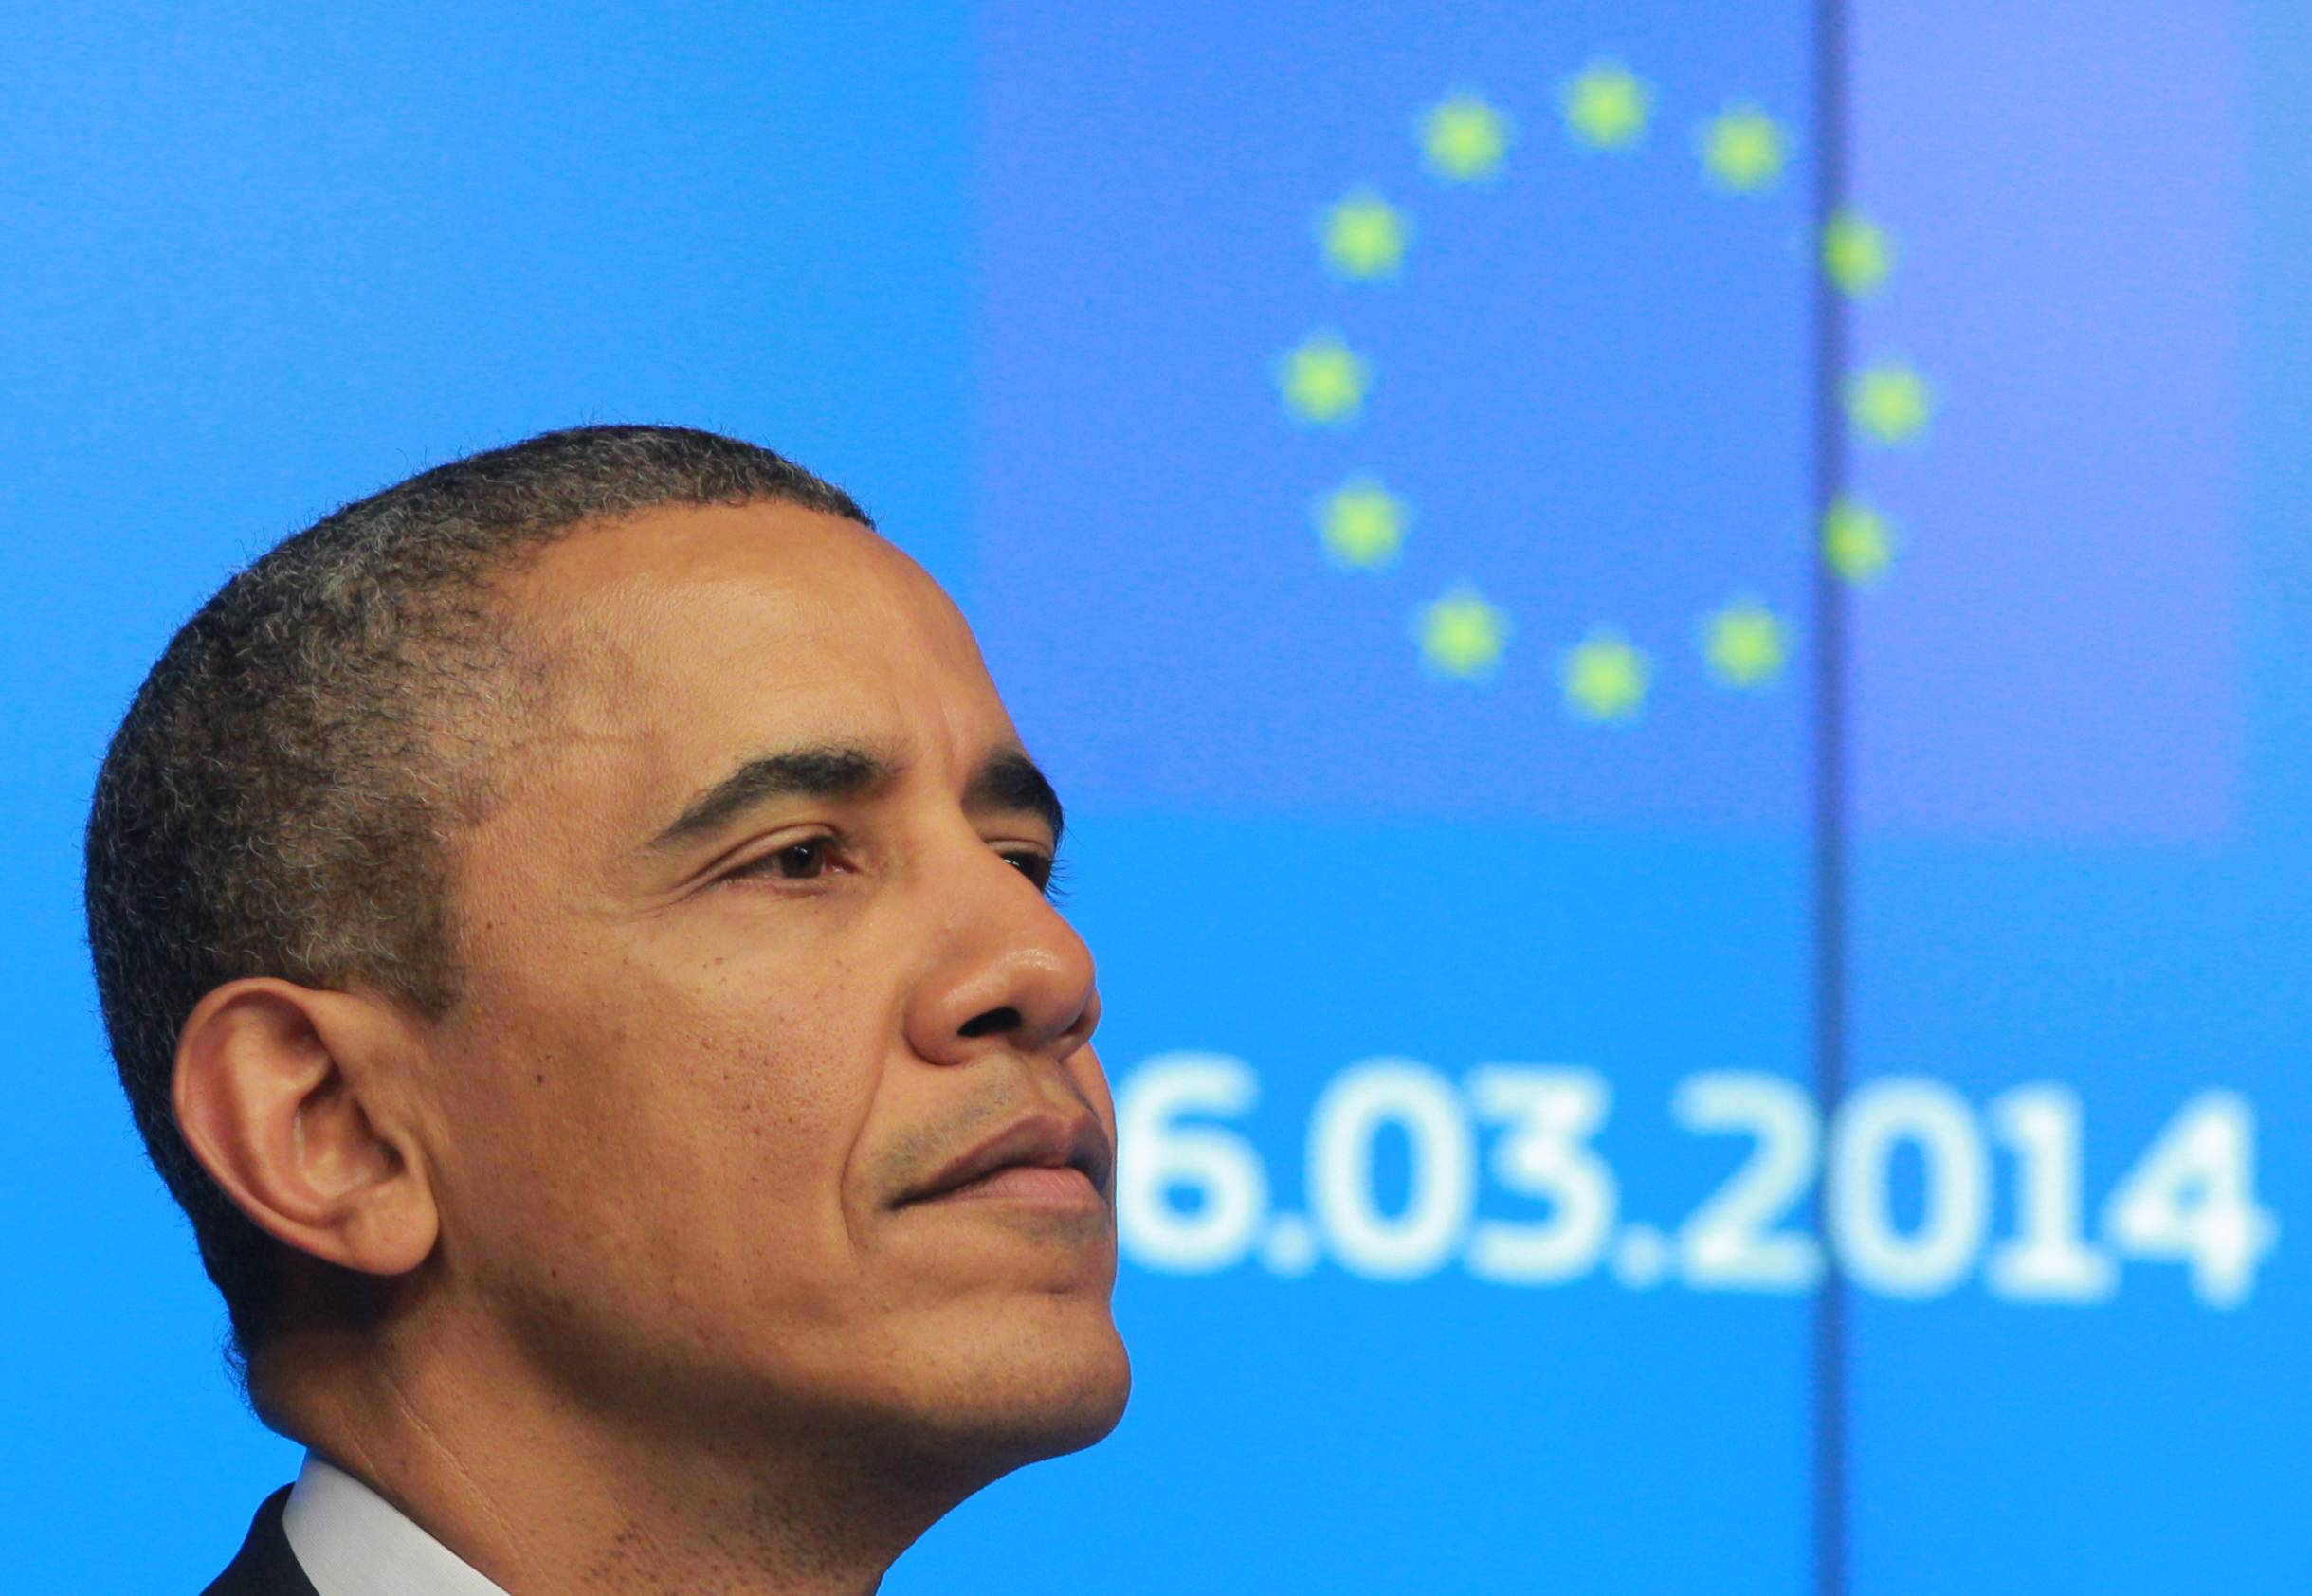 President Barack Obama and European Union leaders presented a unified front Wednesday against Russia's annexation of Crimea, promoting trans-Atlantic trade as an antidote to Russia's influence in the region and a way to help Europe become less dependent on Moscow for energy.